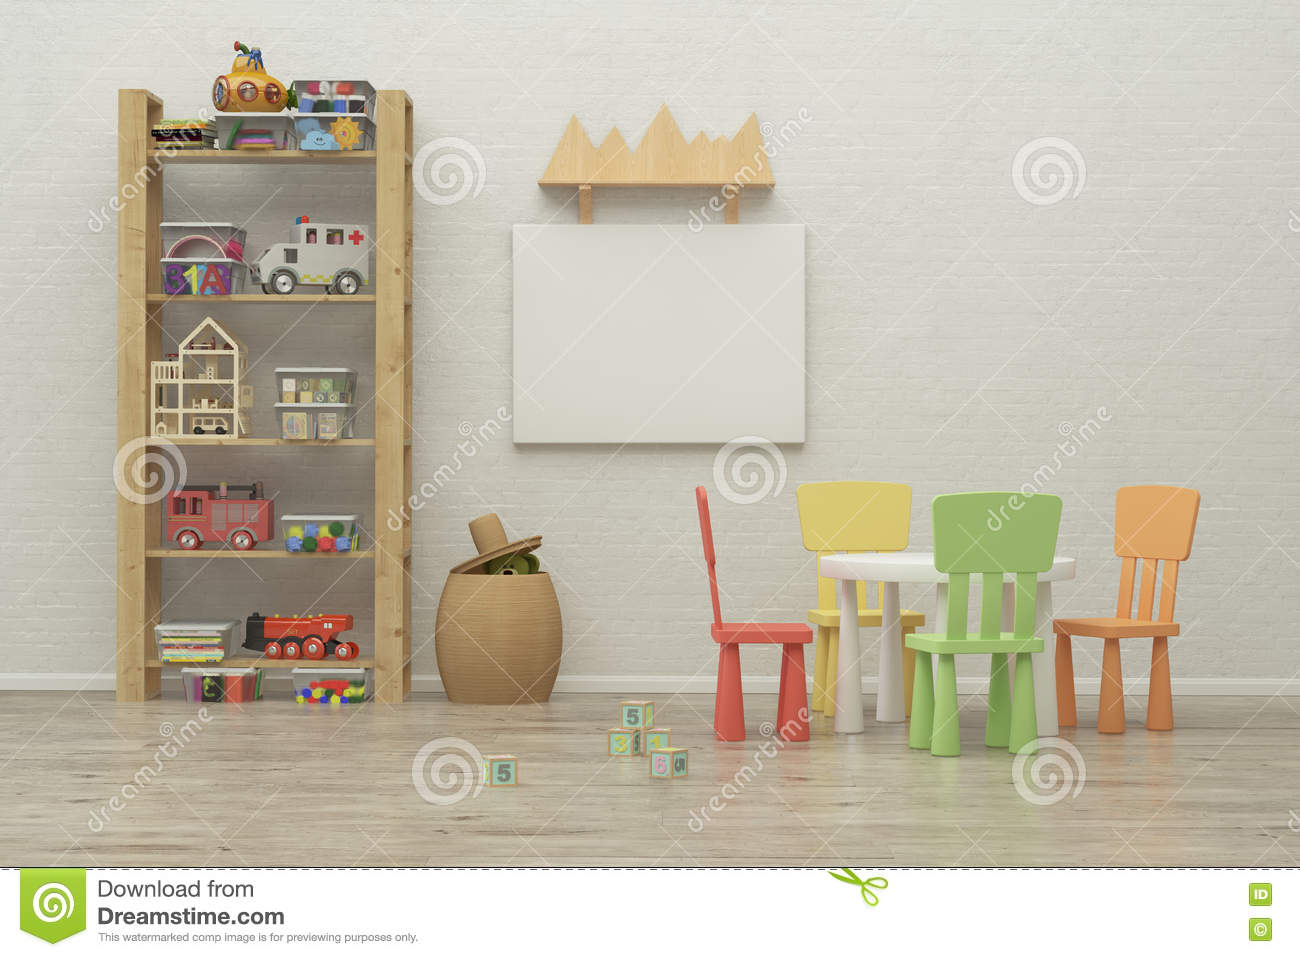 Kids game room interior image 3d rendering stock photo for 3d room decoration game